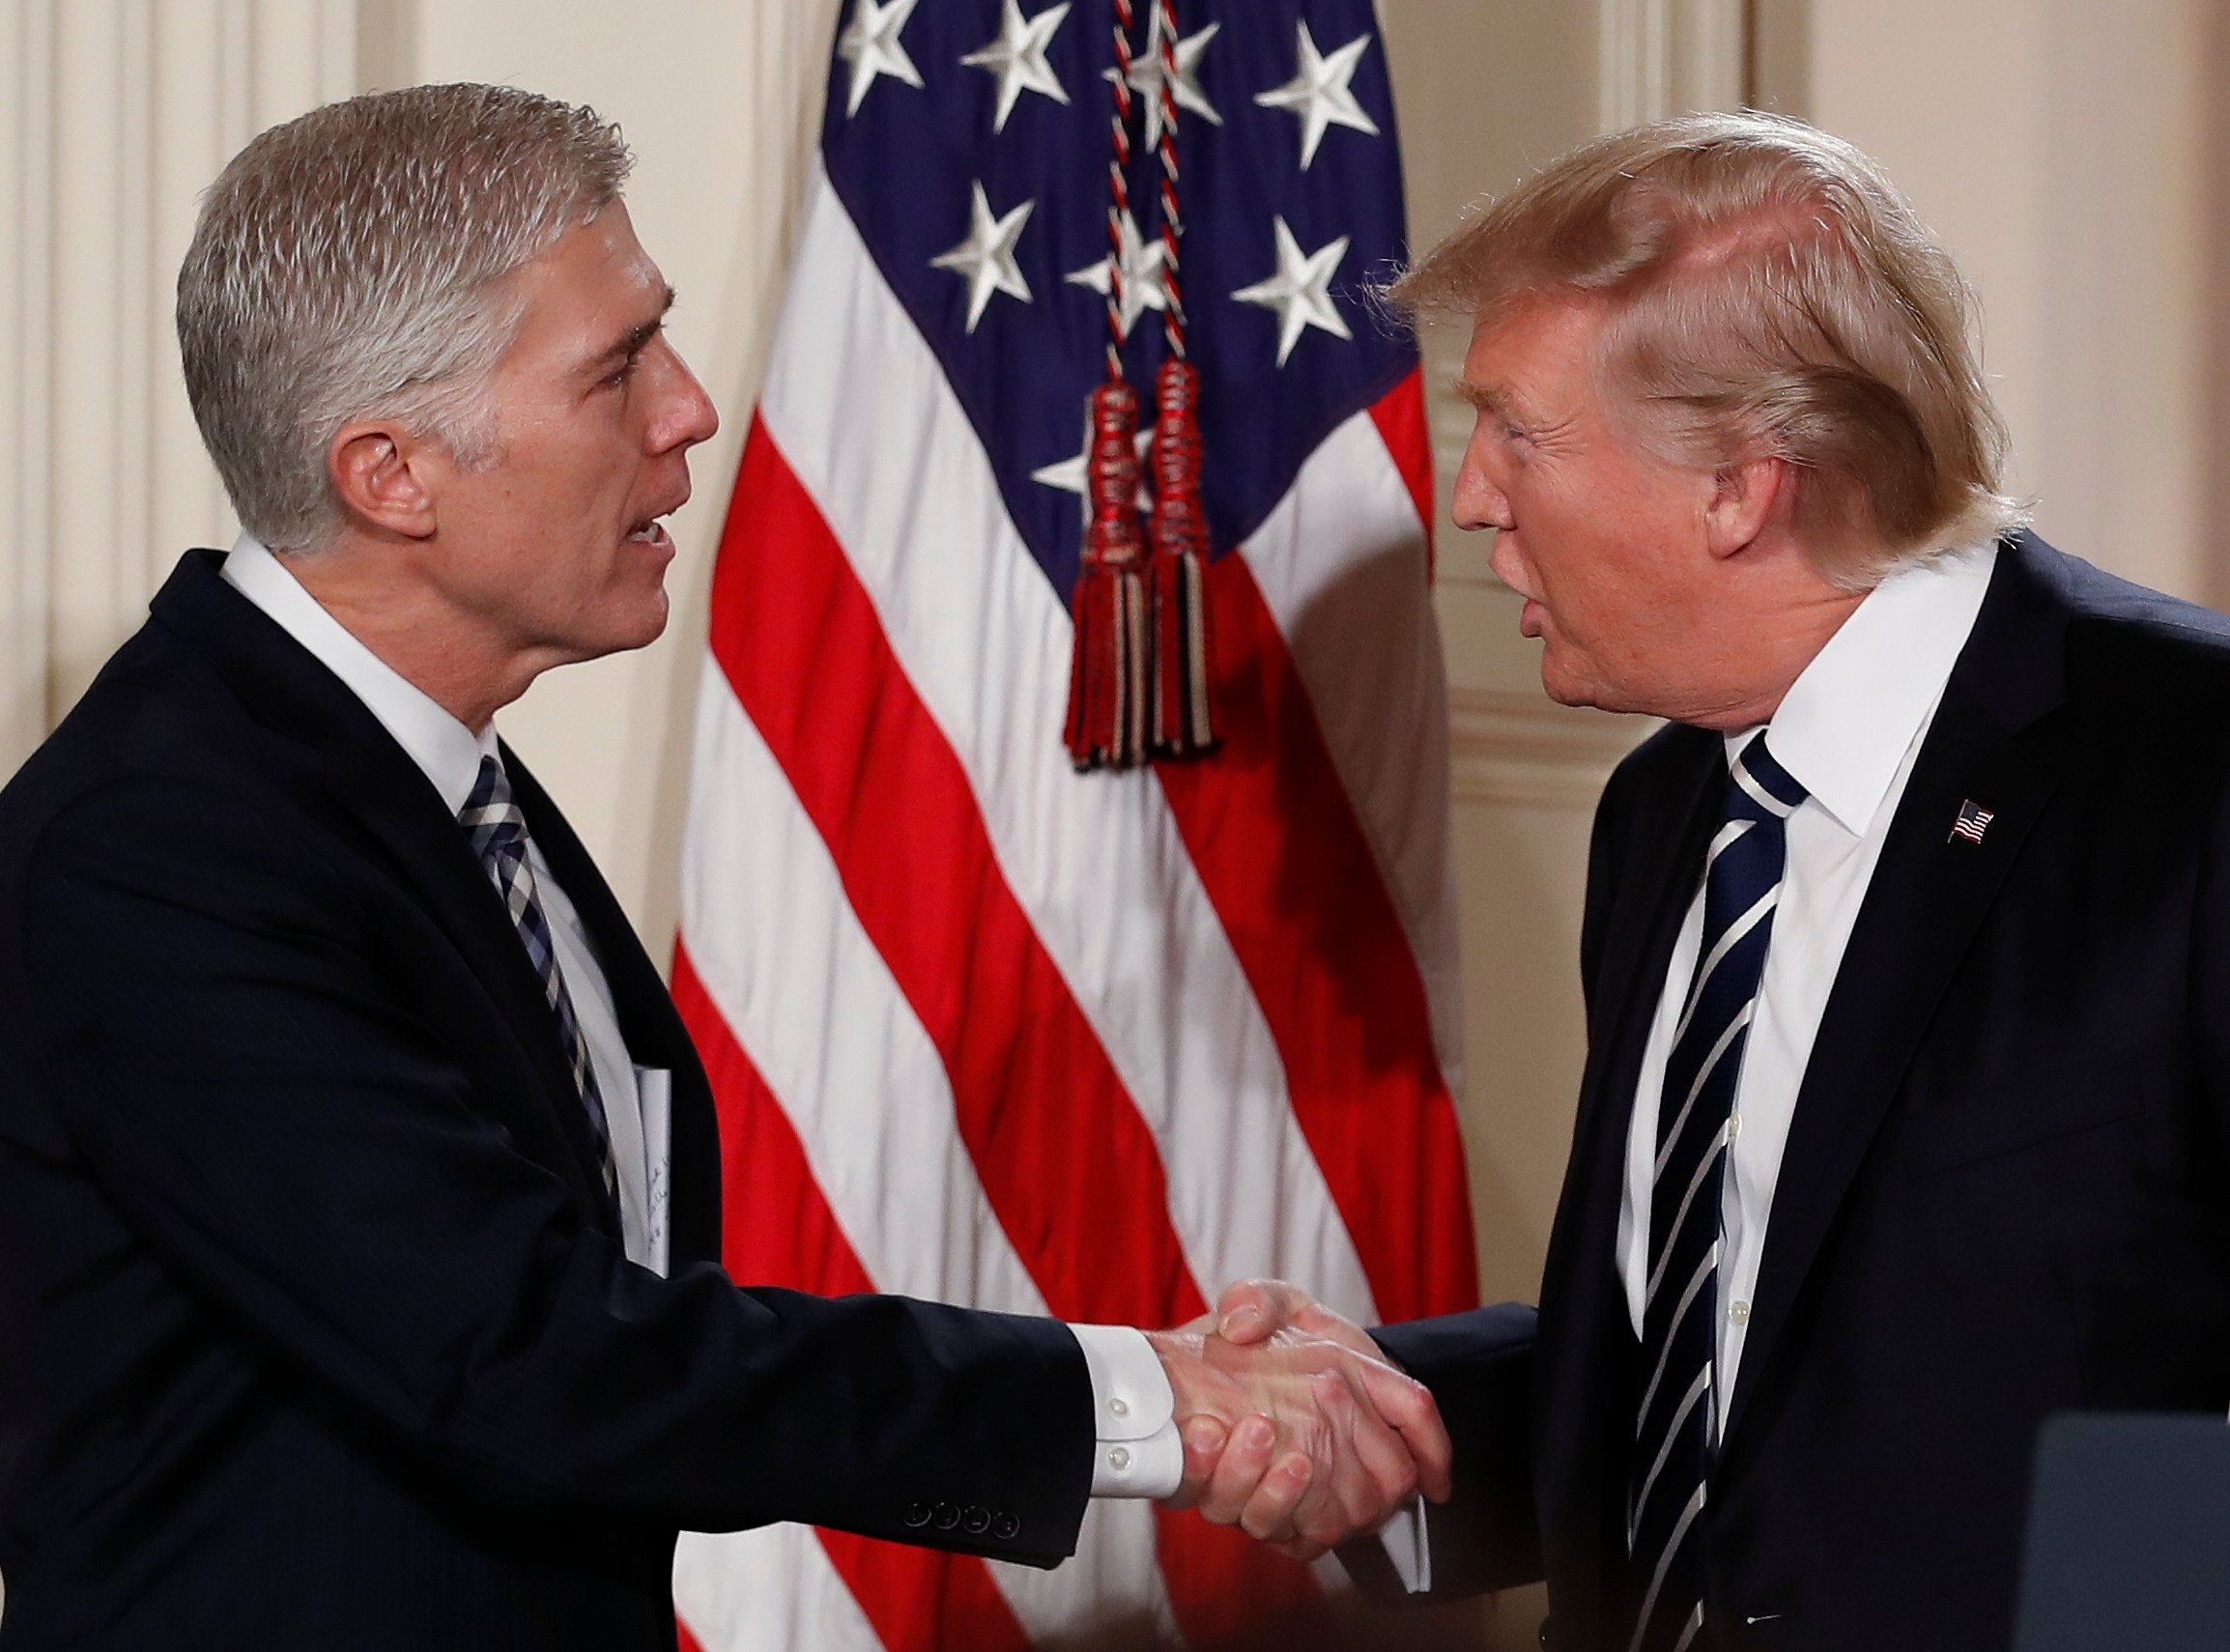 President Donald Trump shakes hands with Judge Neil Gorsuch in East Room of the White House in Washington, Tuesday, Jan. 31, 2017, as he announces Grouch as his nominee for the Supreme Court. (AP Photo/Carolyn Kaster)